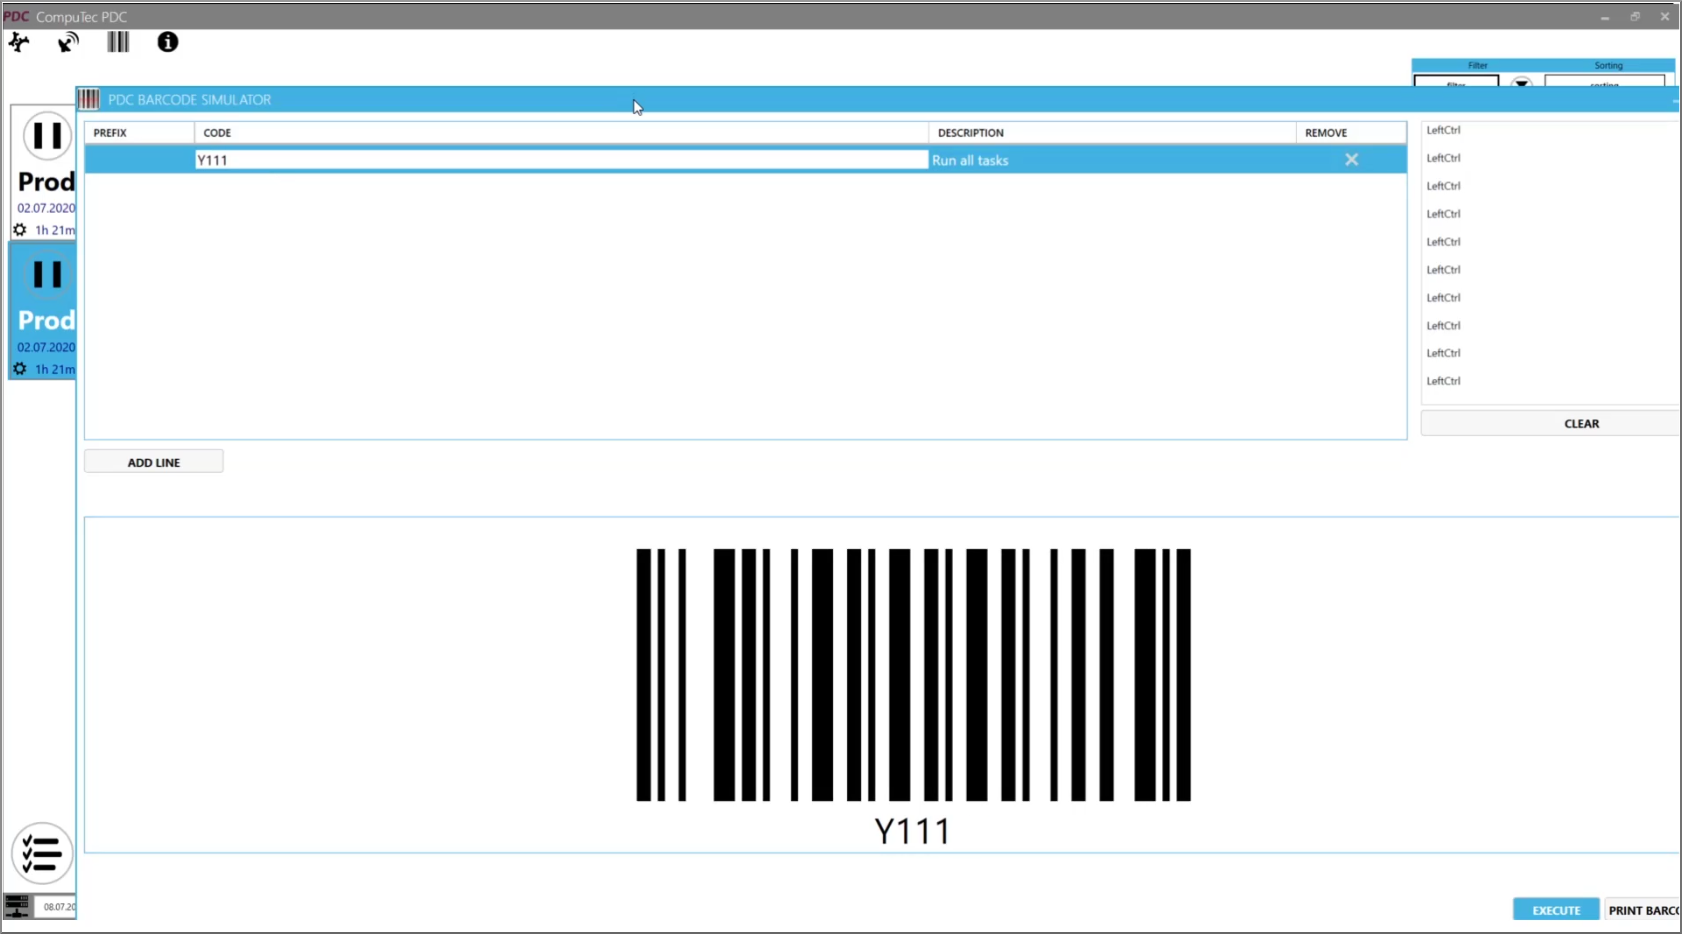 CompuTec PDC Barcode Scanner Simulator